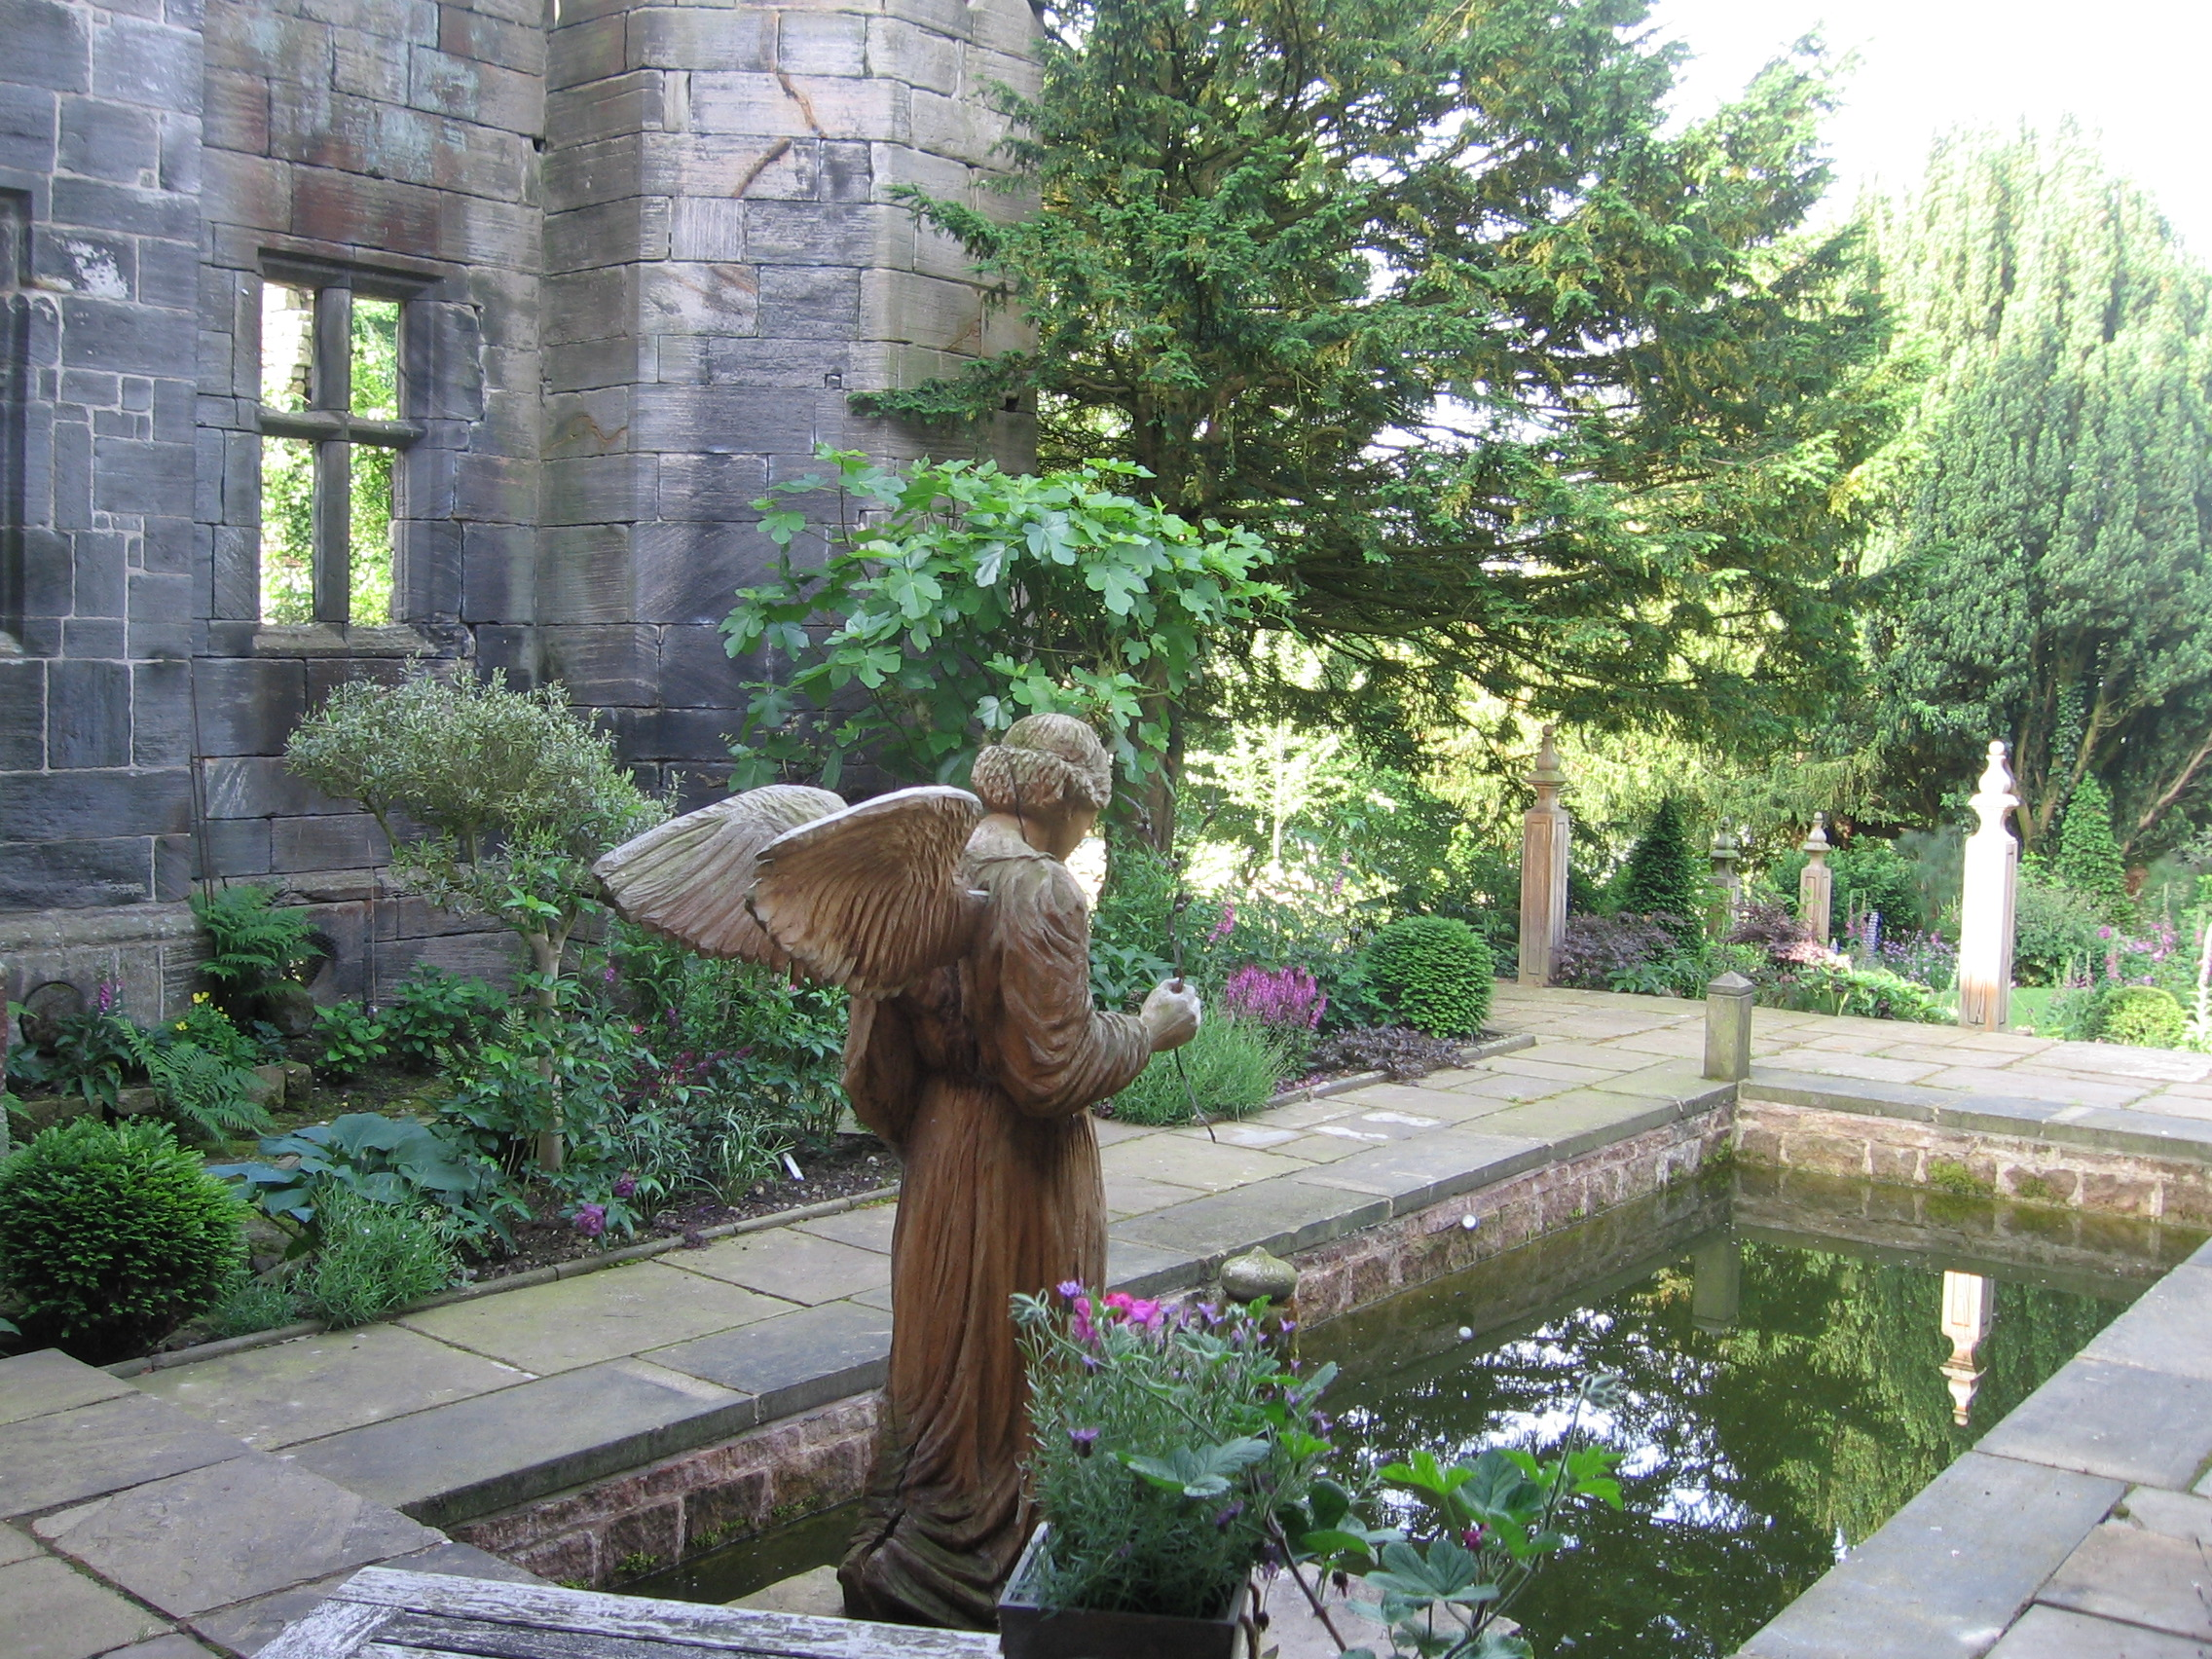 Angel at the pool of bethesda by simon o'rourke at biddulph old hall